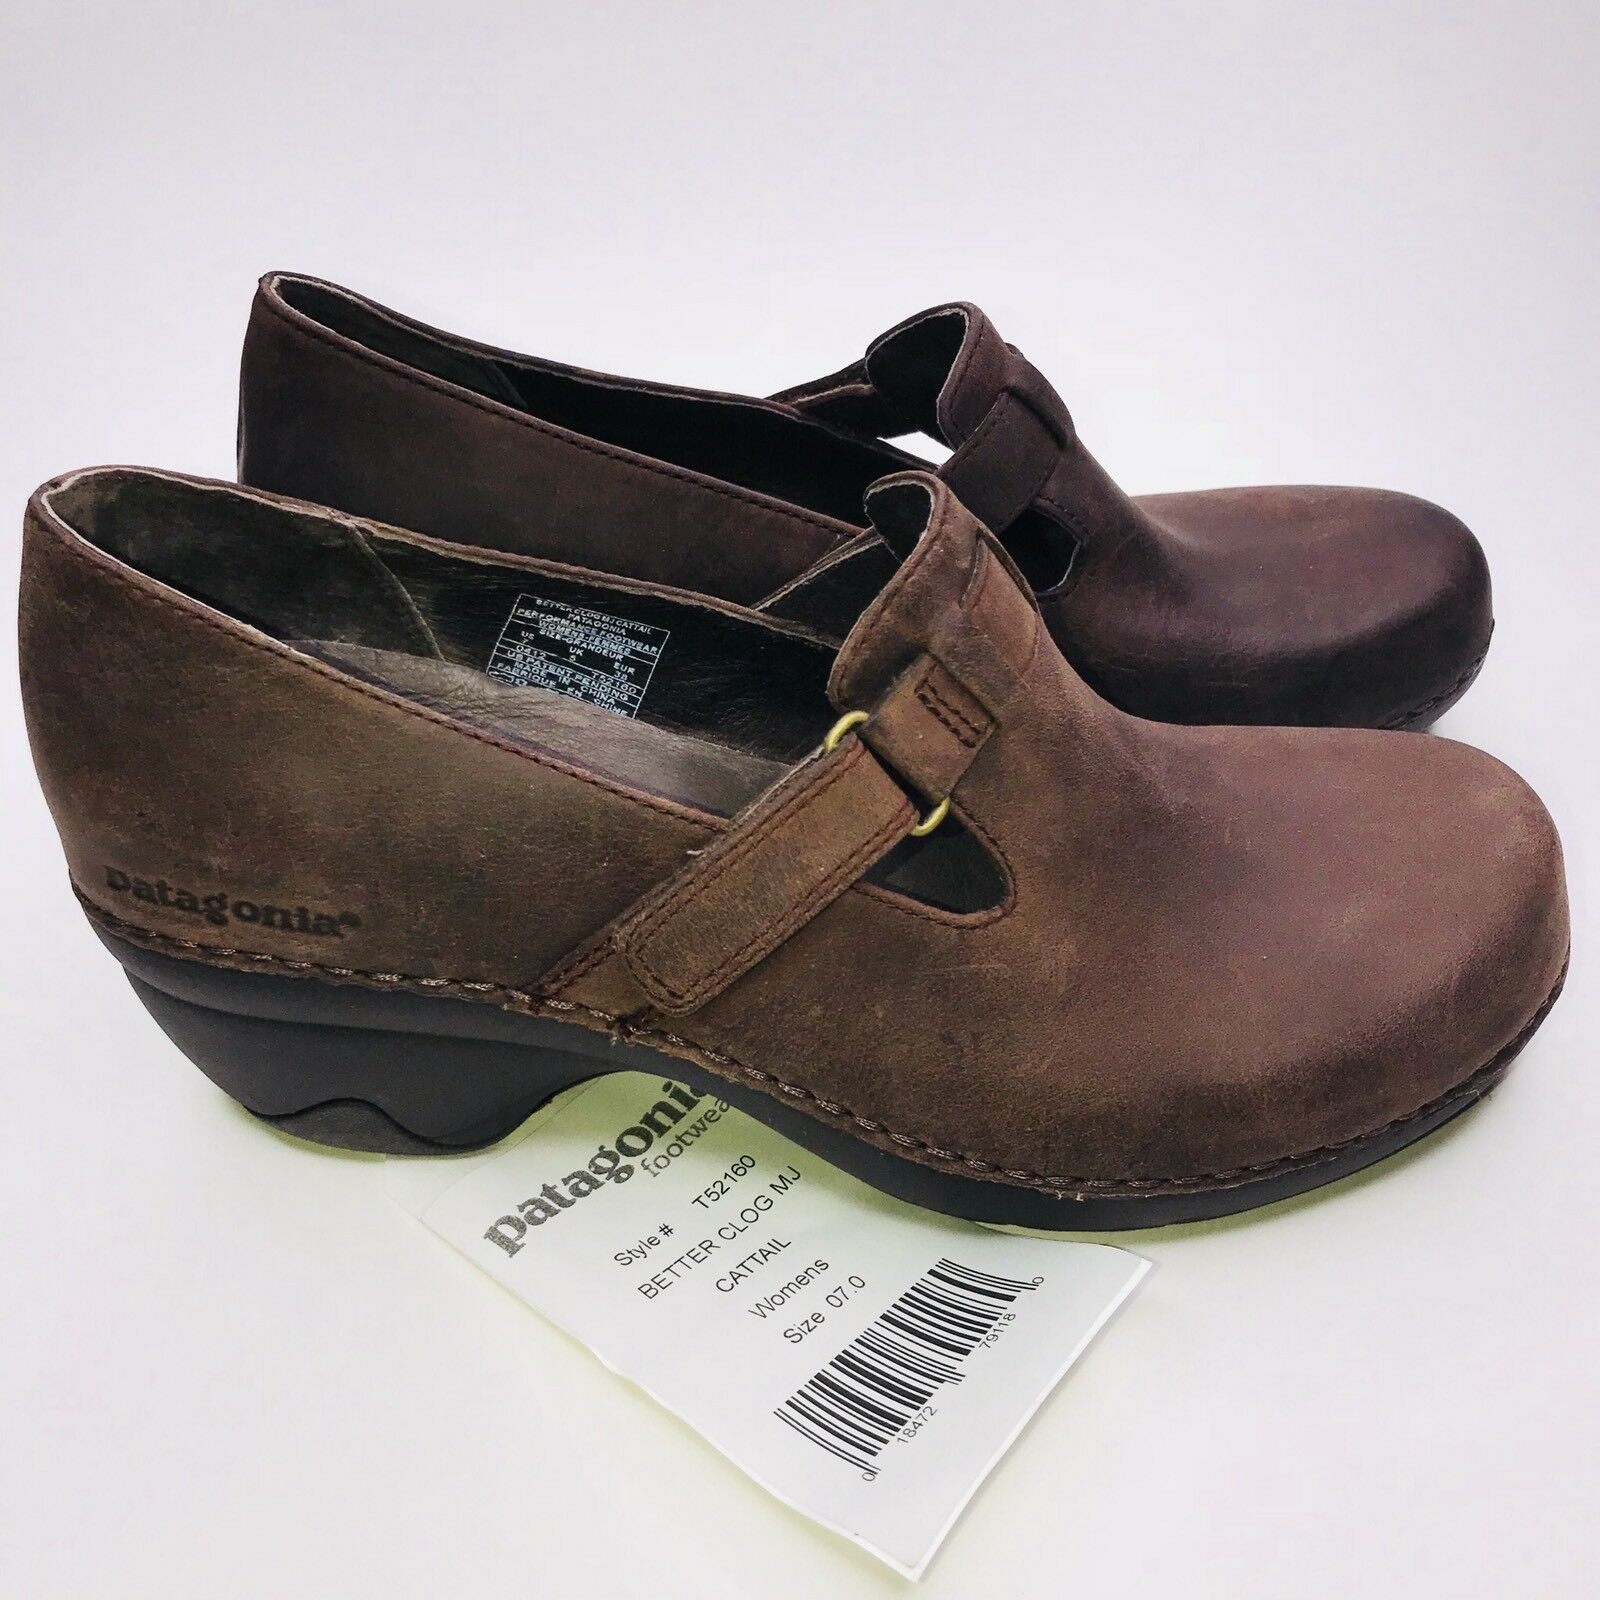 Patagonia BETTER CLOGS CLOGS CLOGS Sz 7M Brown Leather Women's shoes ULTRA SOFT & COMFY New 7706d6